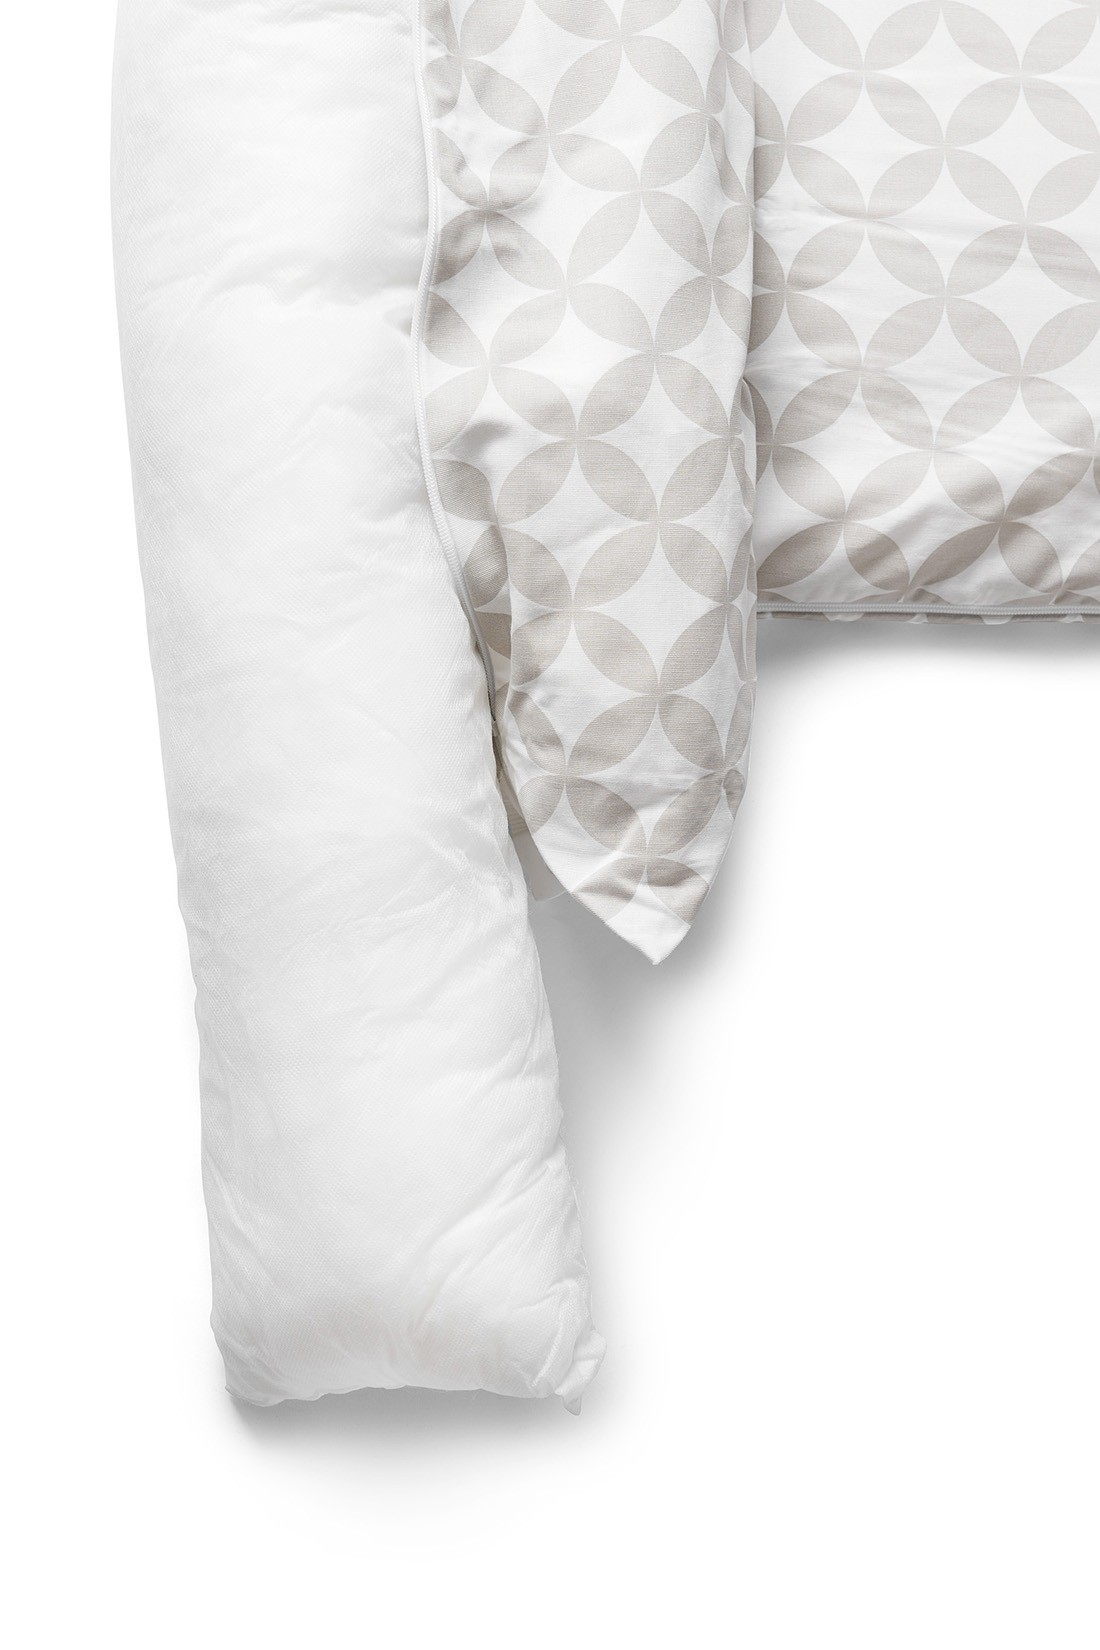 Dockatot Grand Spare Part Inner Pillow Tube